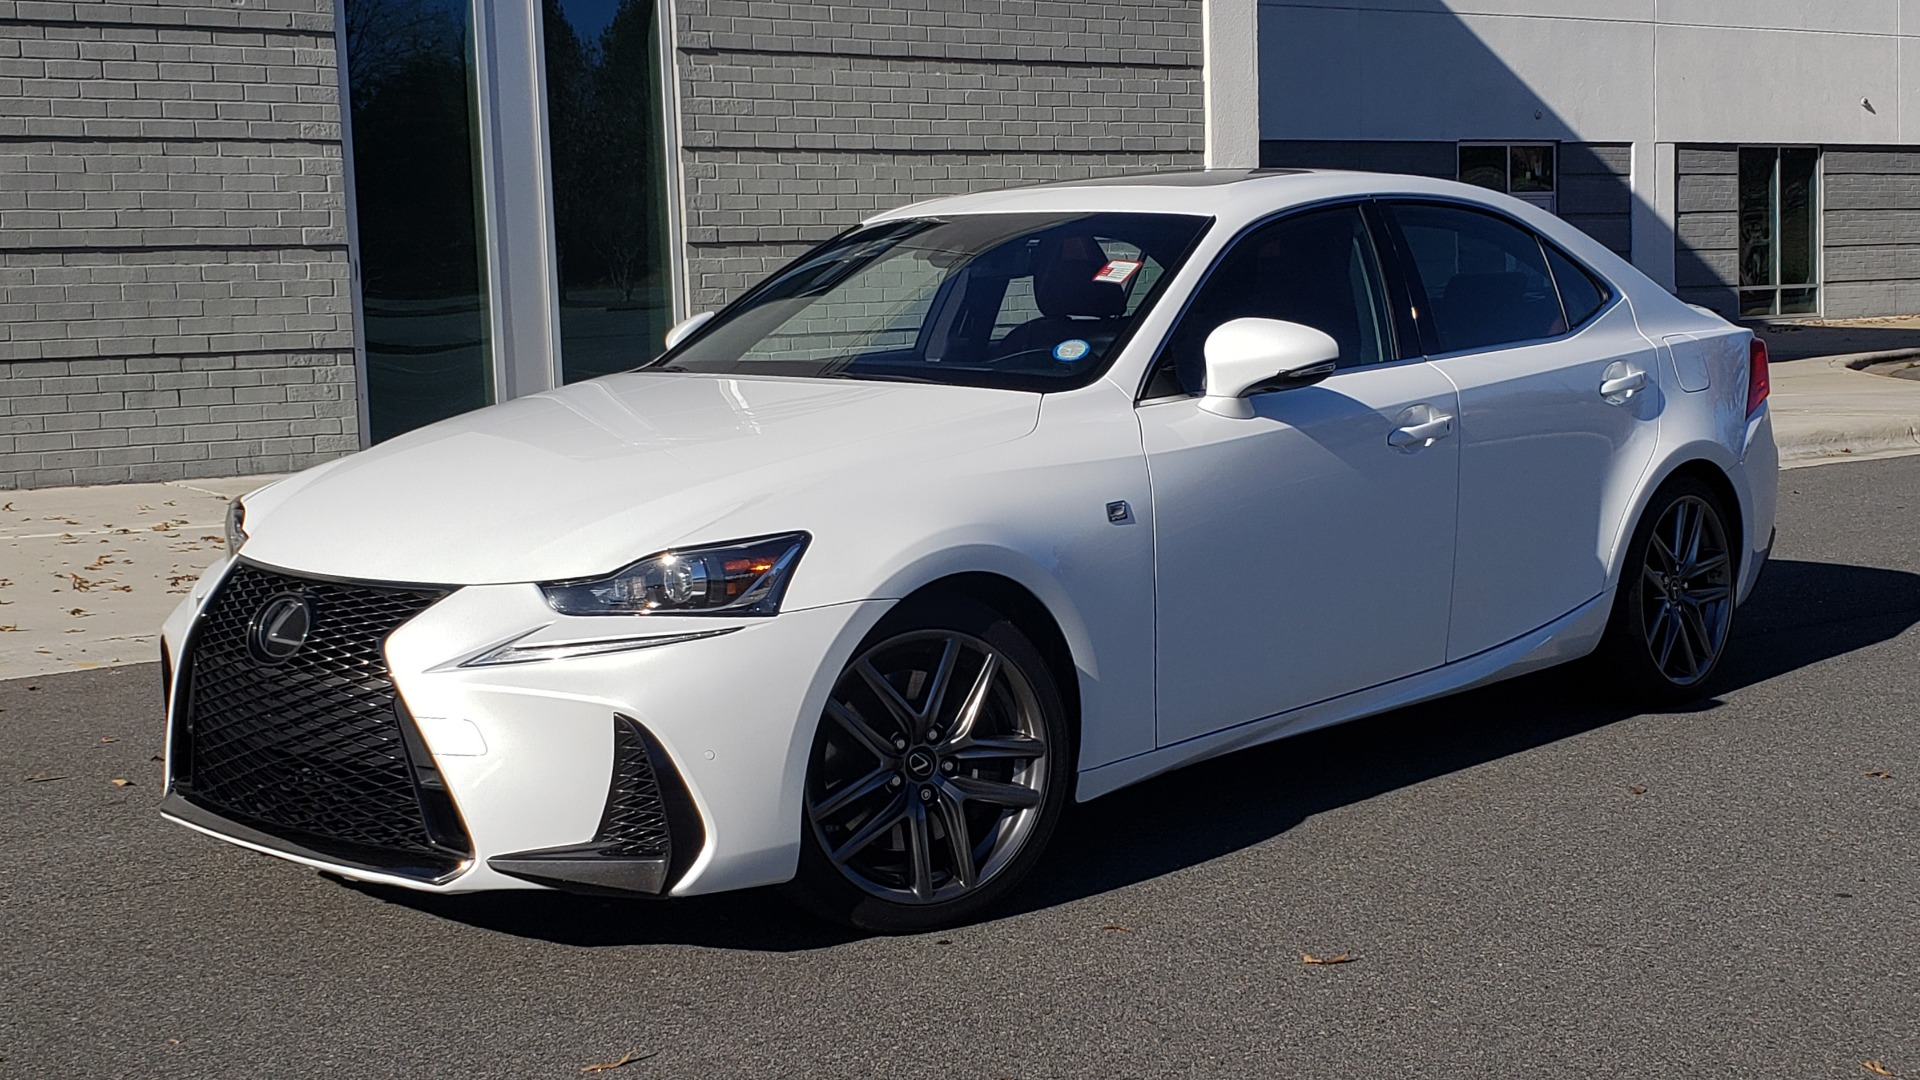 Used 2018 Lexus IS 300 F-SPORT / BSM / SUNROOF / REARVIEW / 18IN WHEELS for sale Sold at Formula Imports in Charlotte NC 28227 1